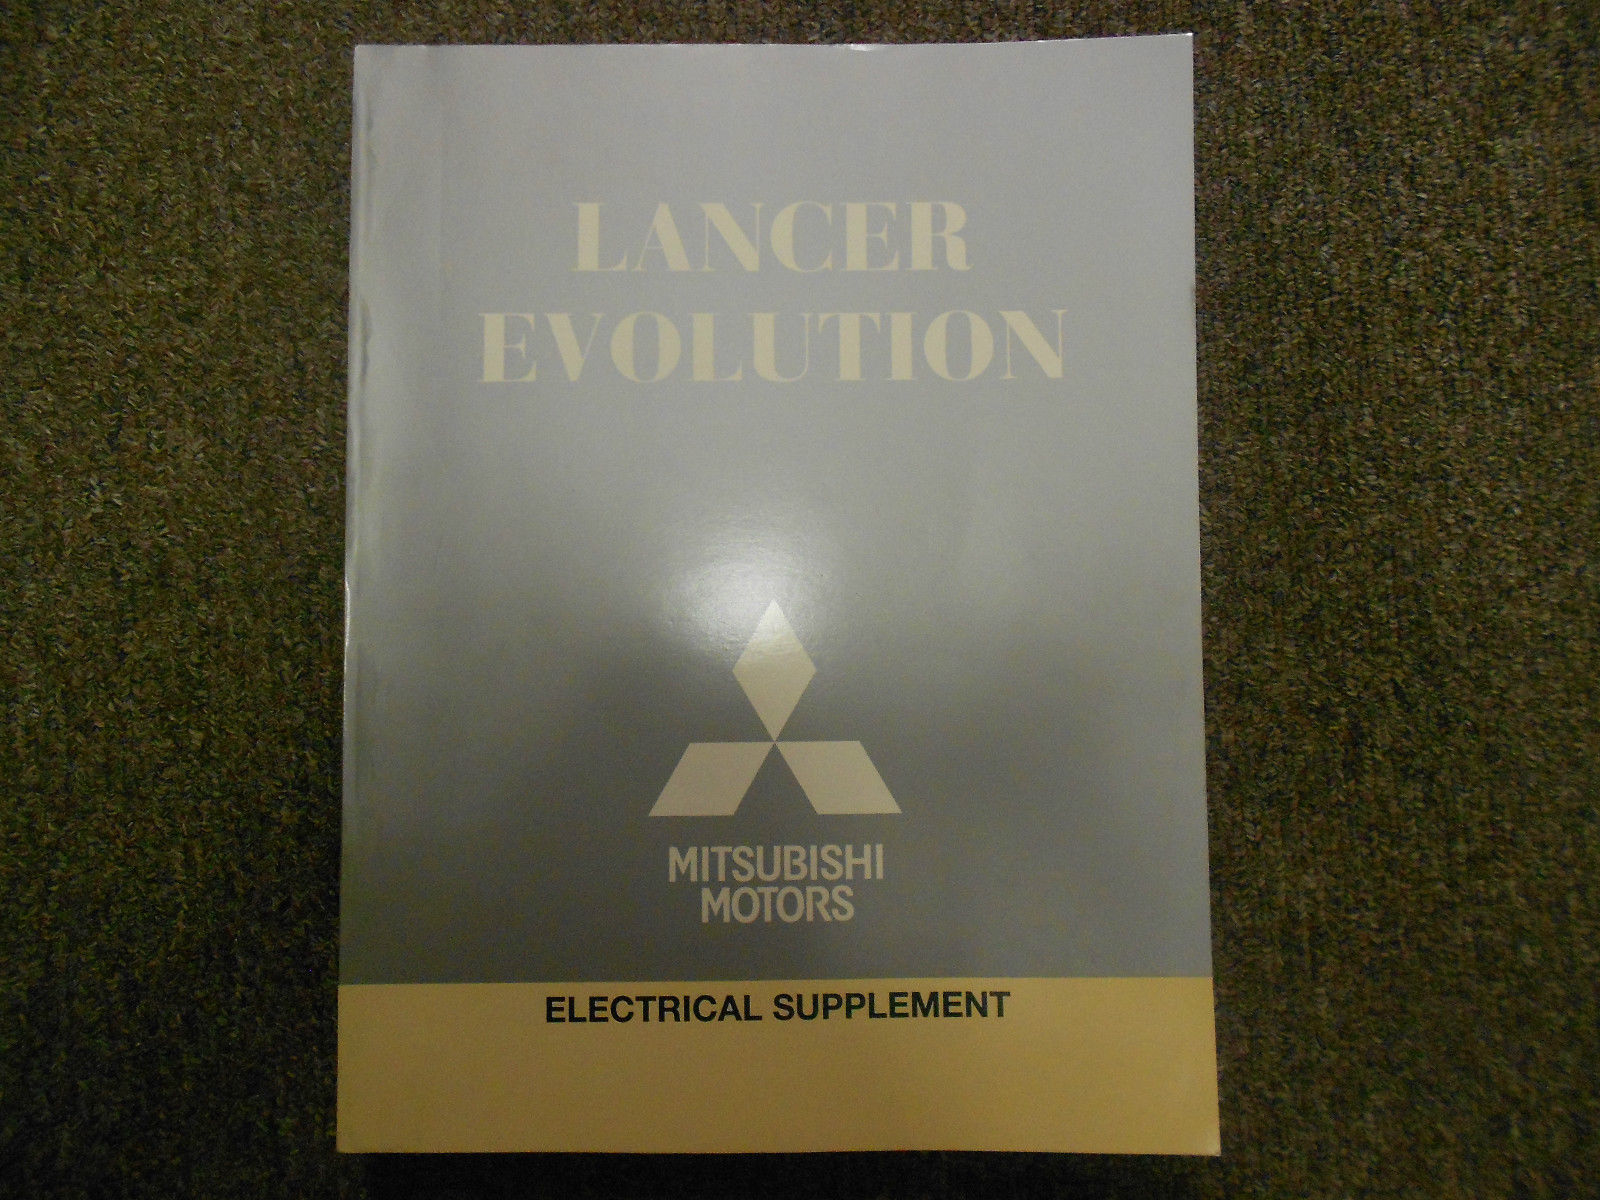 2011 MITSUBISHI Lancer Evolution Electrical Supplement Service Repair Manual NEW